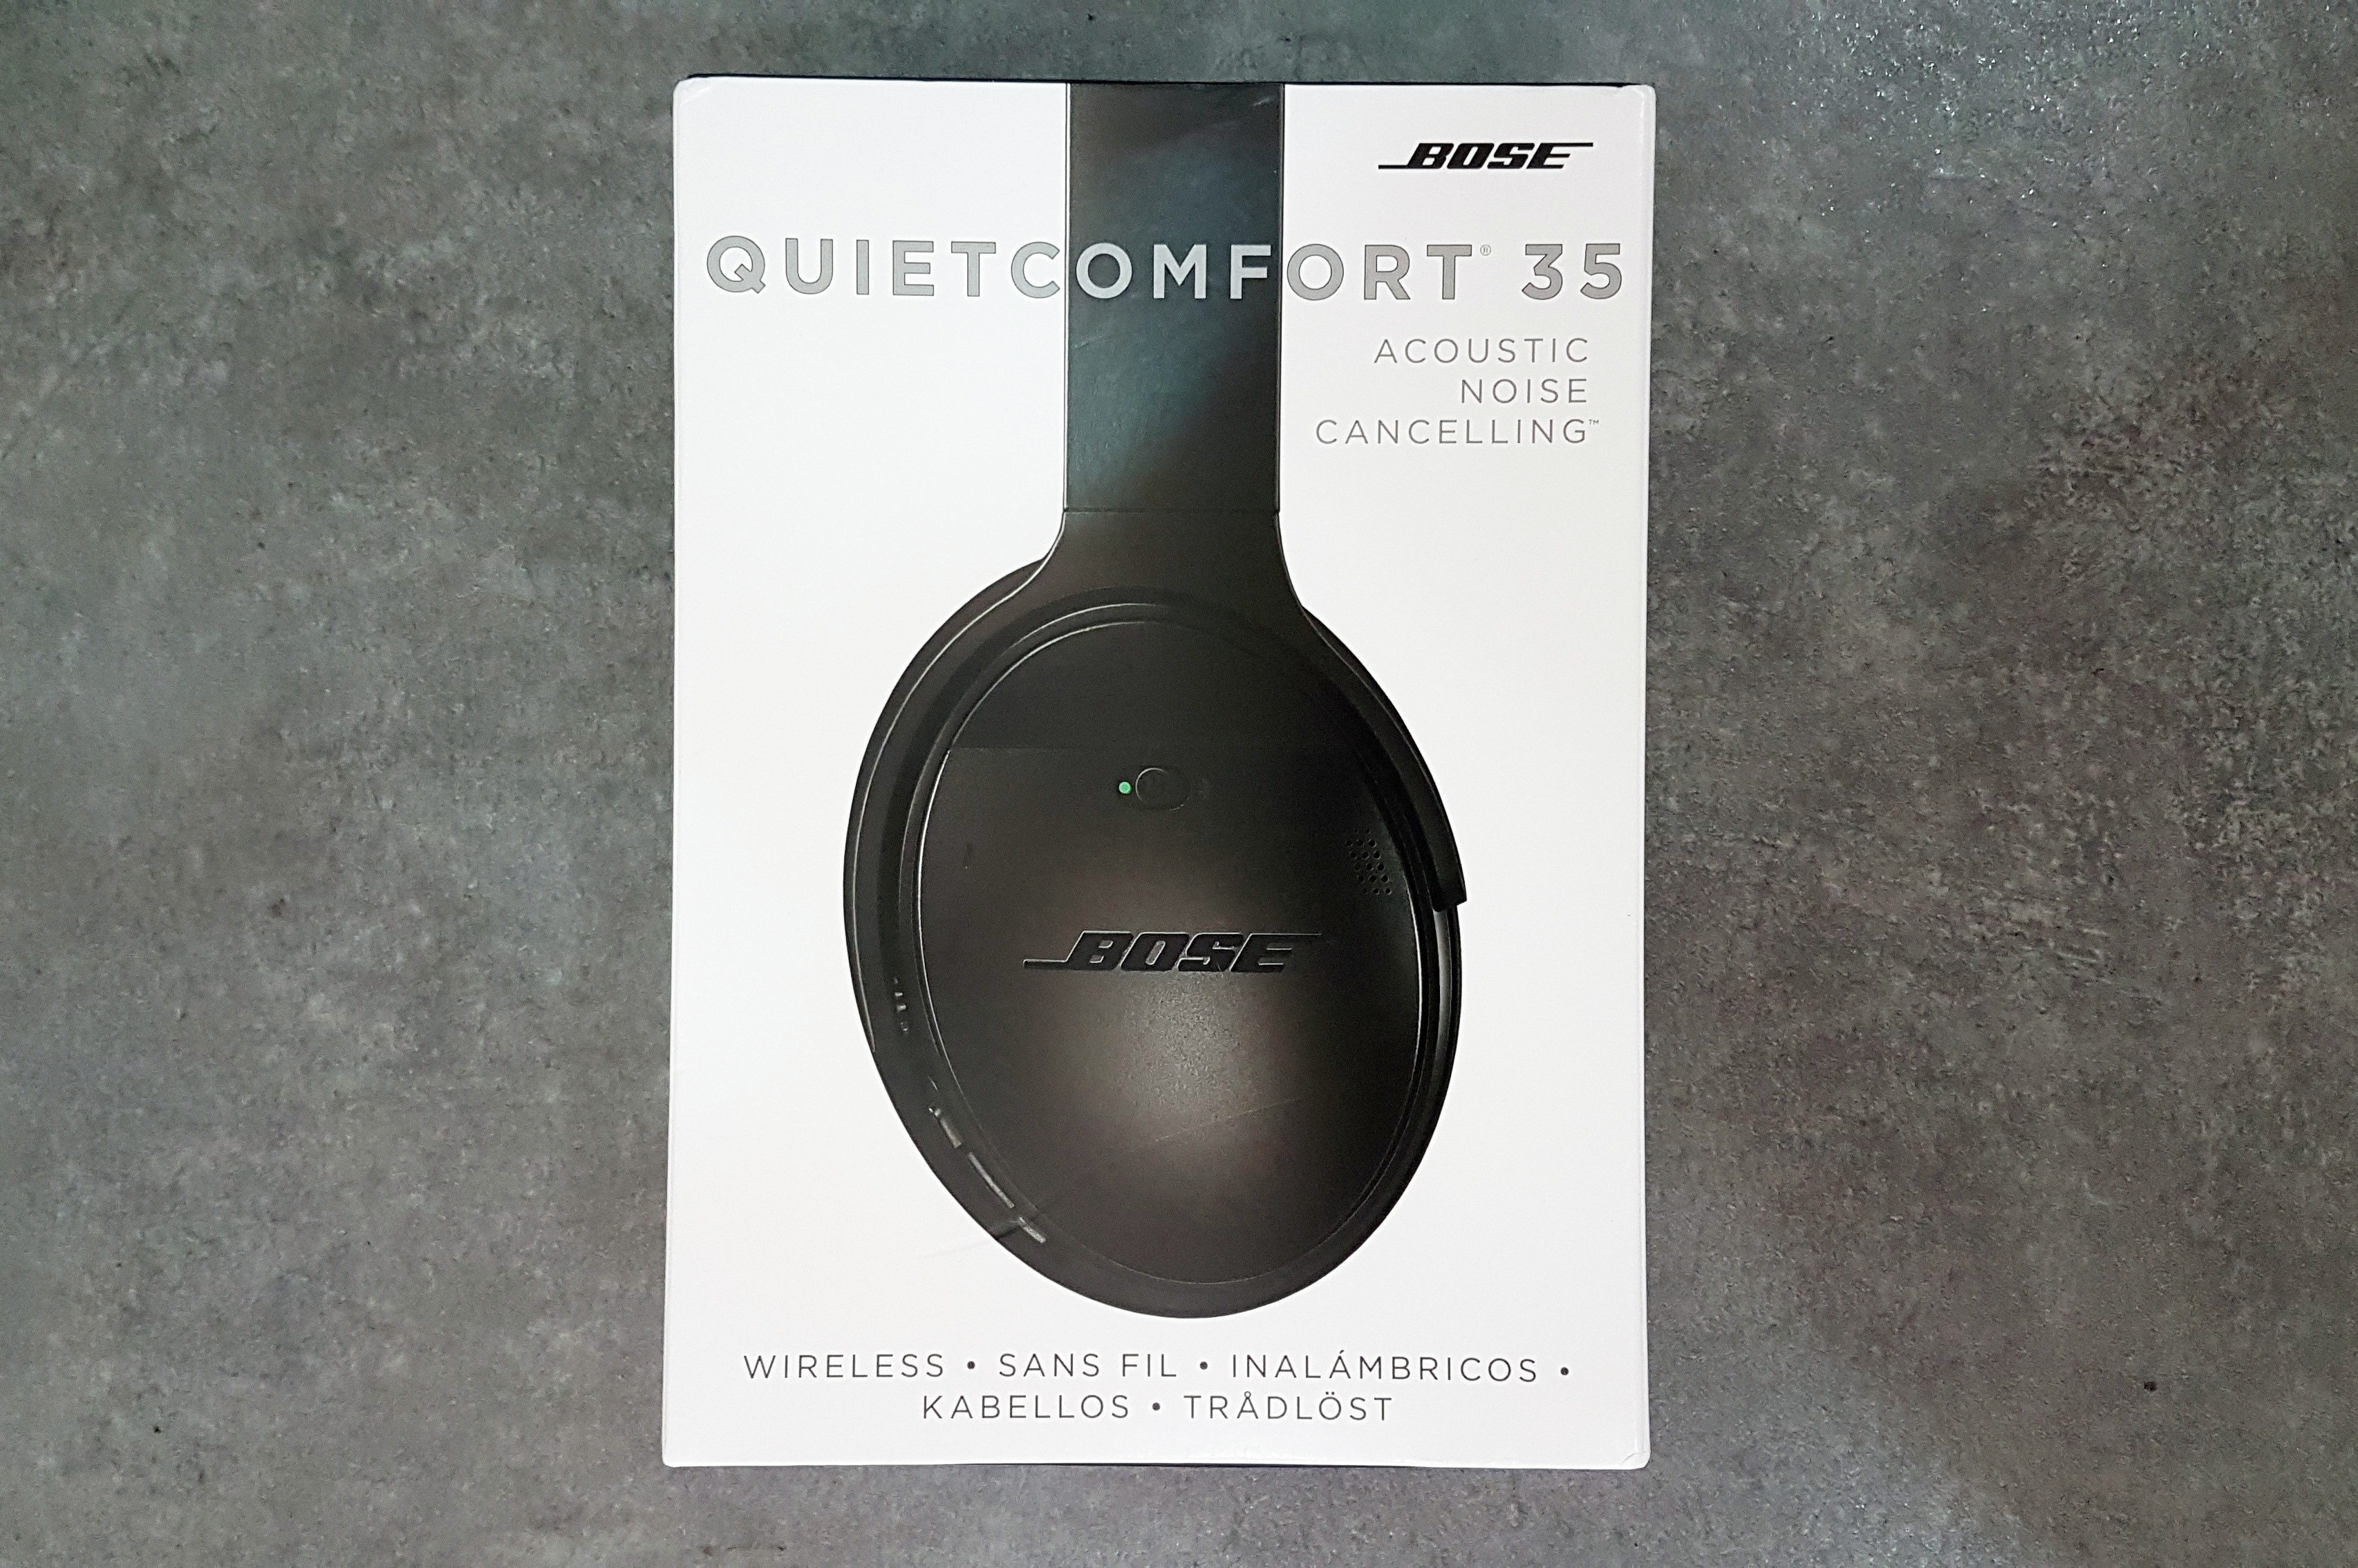 Bose Quietcomfort 35 Review Superb Quiet And Comfort Come With A